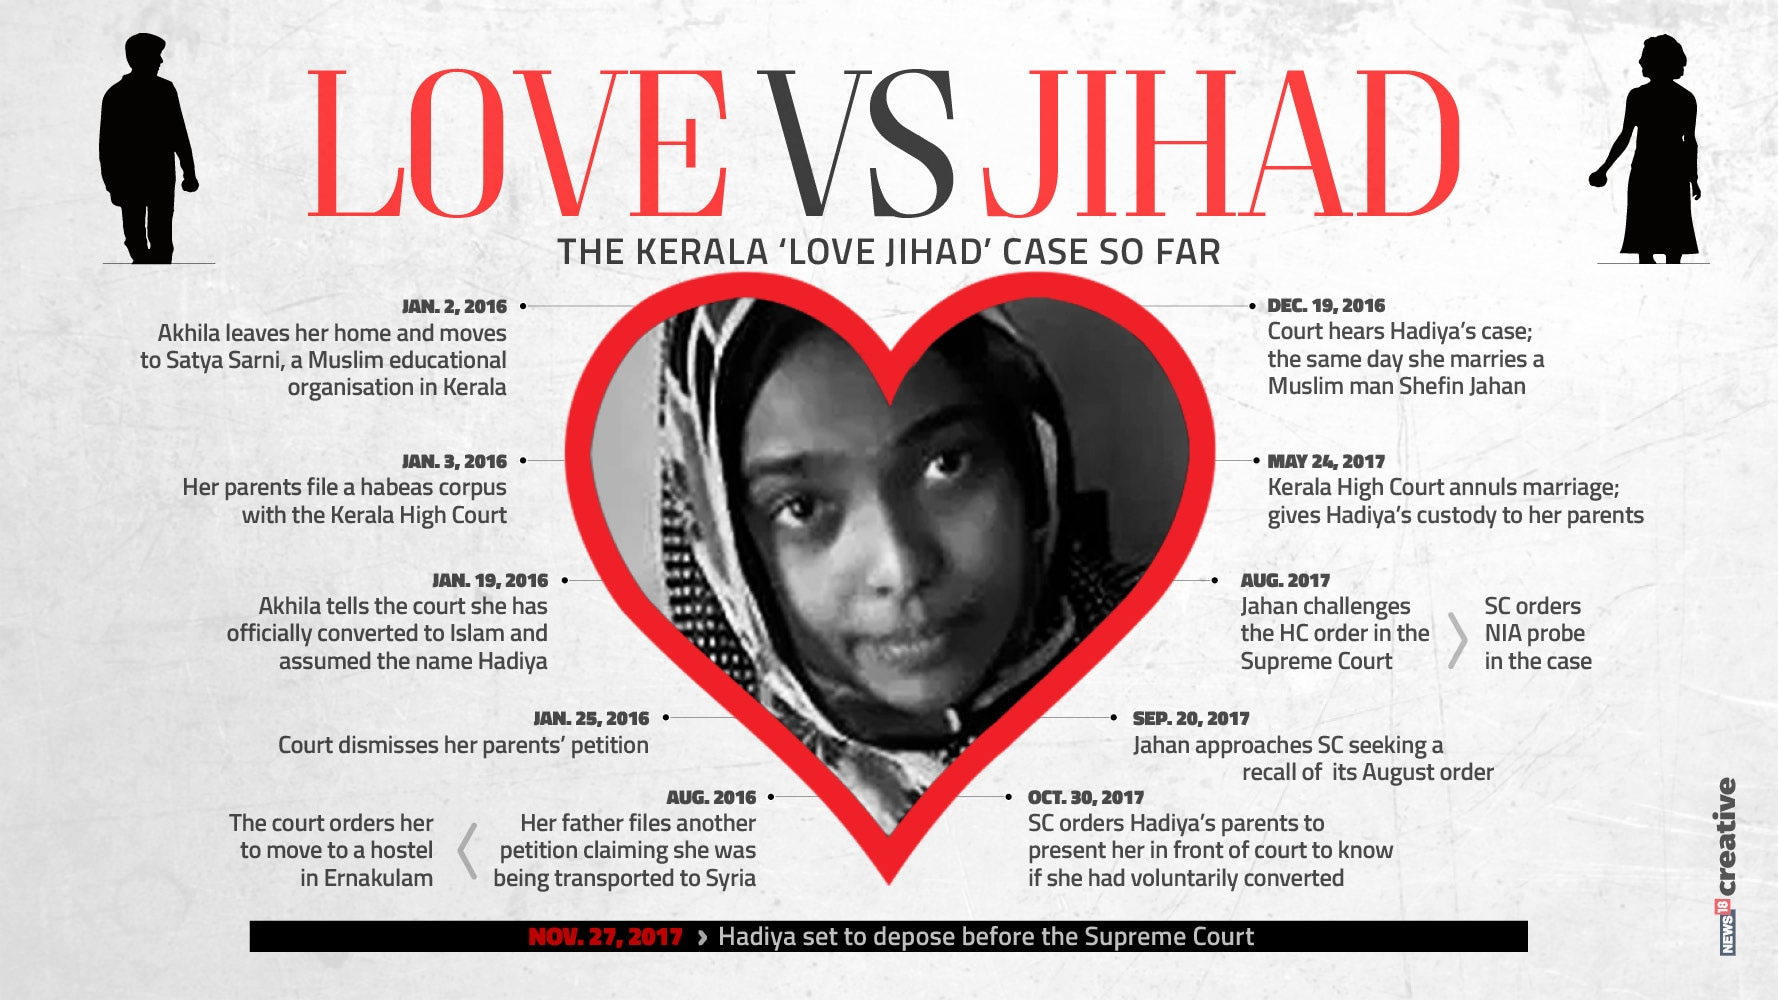 Kerala Love Jihad case: SC adjourns hearing till Mar 8